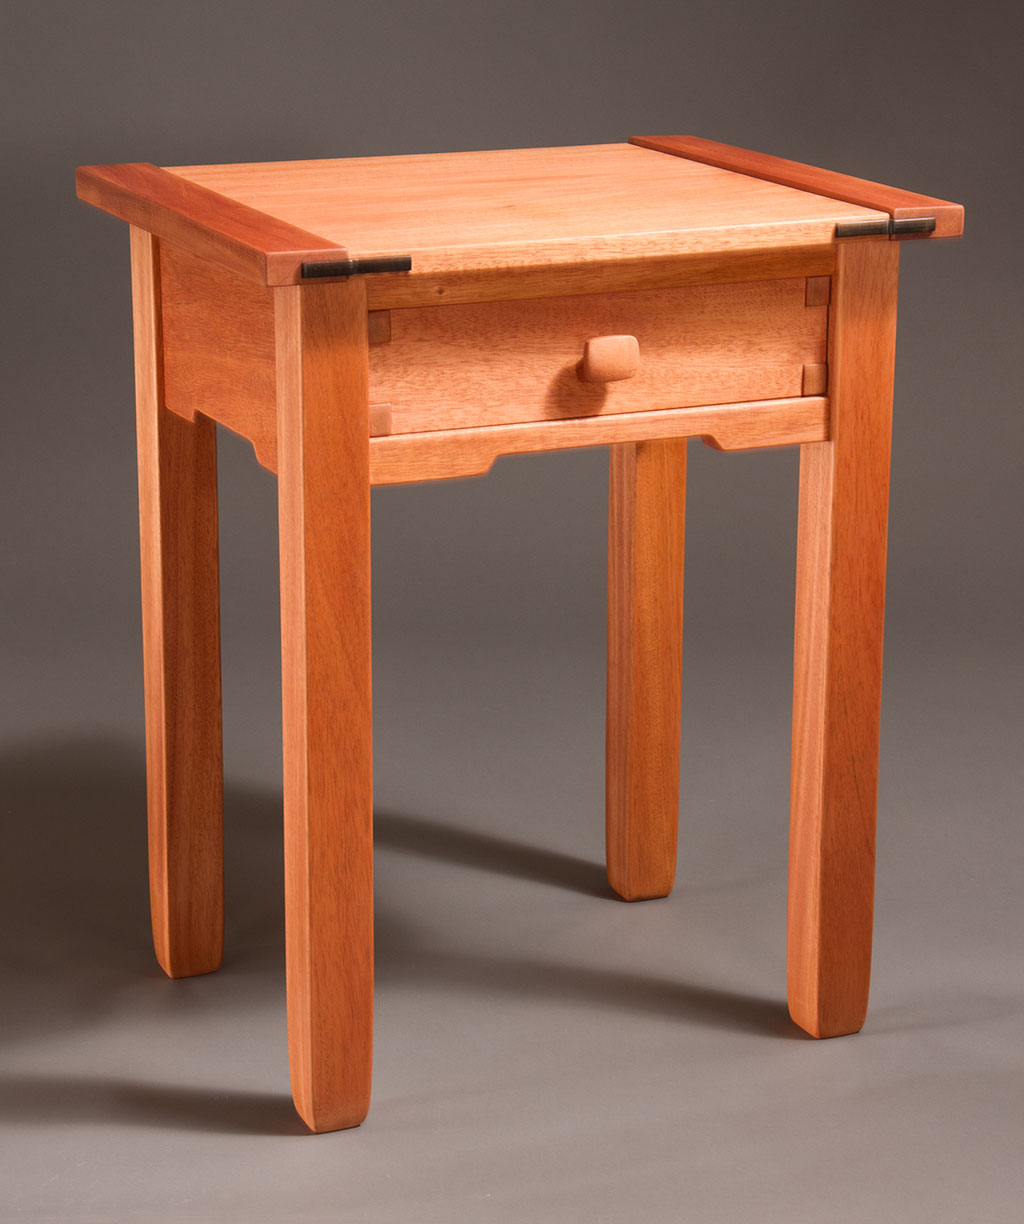 Custom Solid Wood Furniture Thatu0027s Built To Last In Albuquerque, New Mexico.